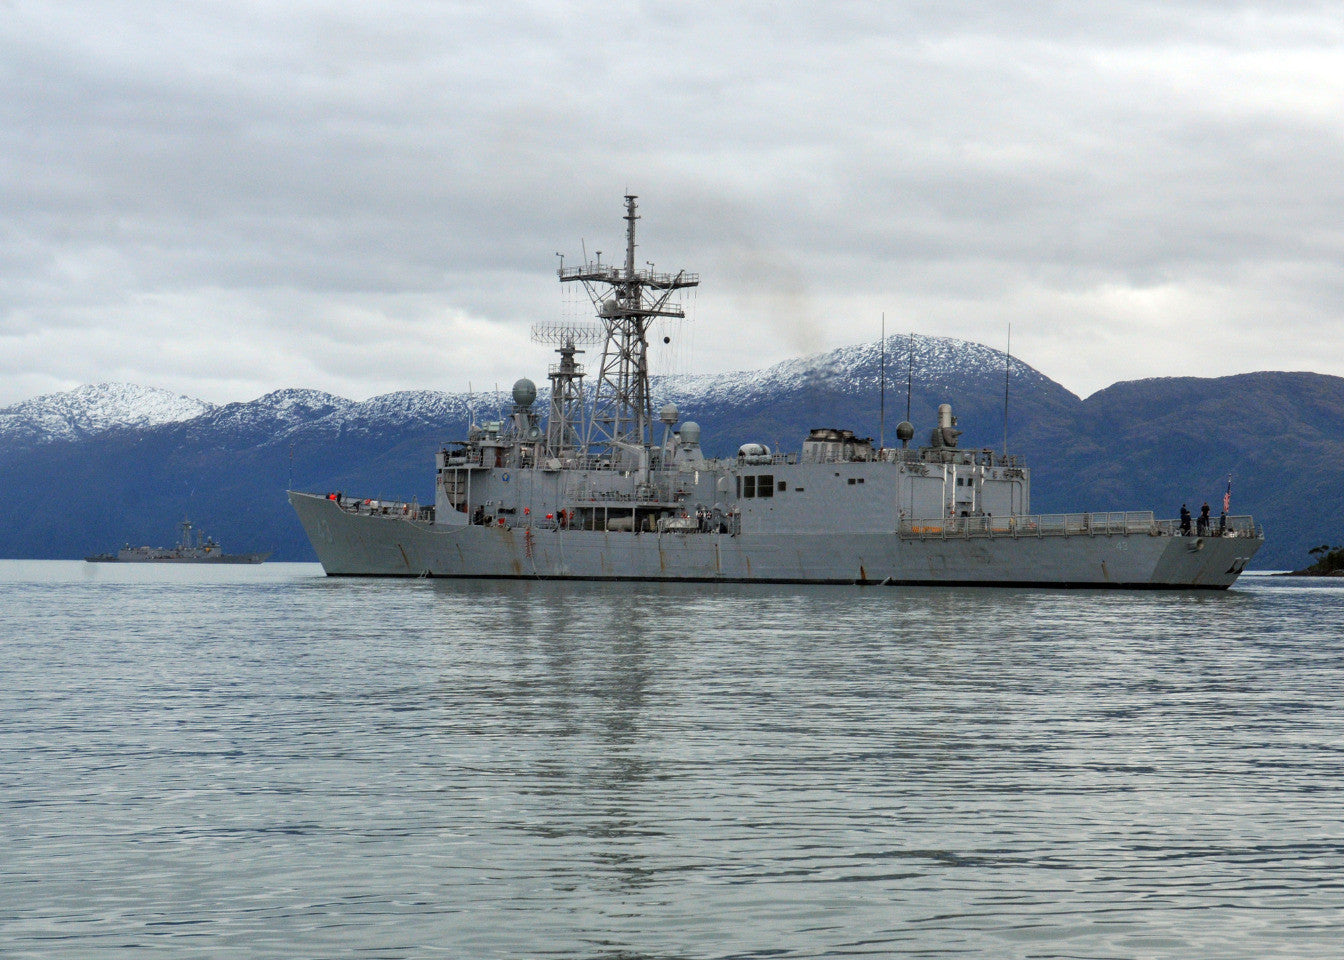 "USS Thach FFG-43) STRAIT OF MAGELLAN (May 26, 2011) - 4"" x 6"" Photograph"